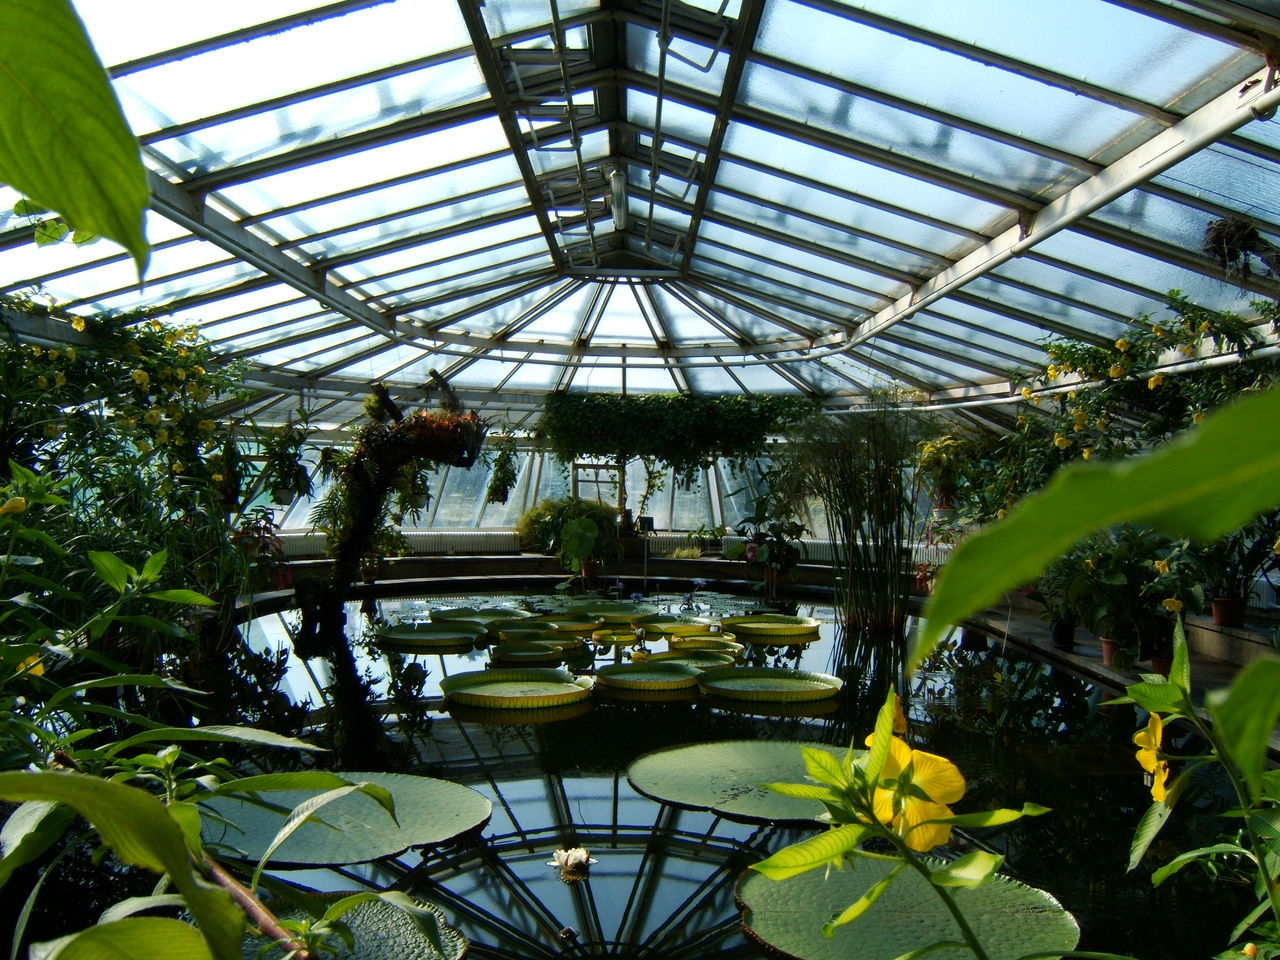 plant, greenhouse, growth, indoors, leaf, flower, architecture, built structure, ceiling, nature, day, green color, no people, beauty in nature, water, botanical garden, plant nursery, tree